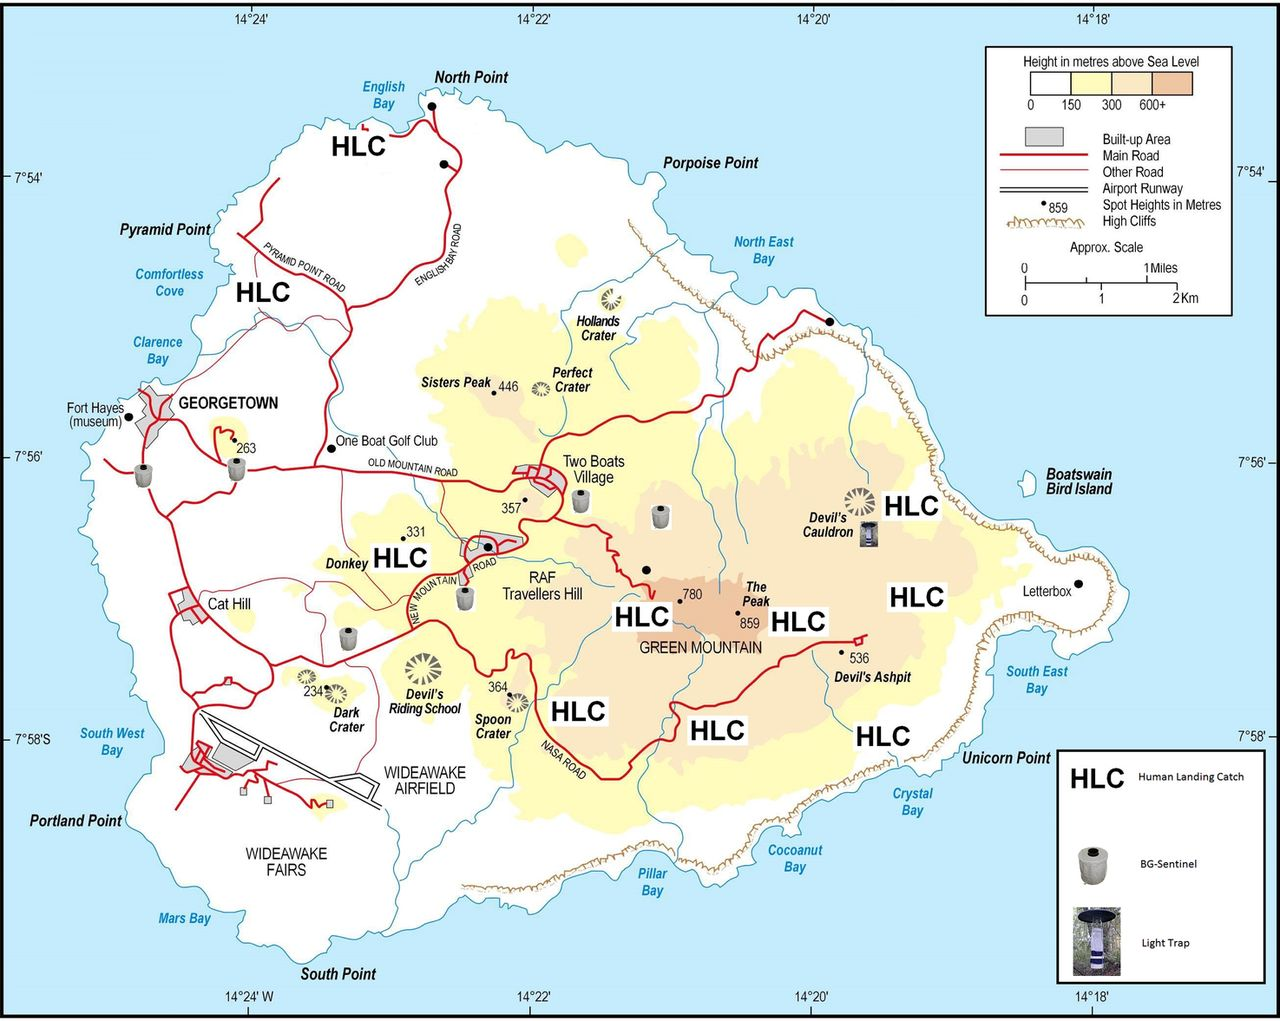 Ascension Island a survey to assess the presence of Zika virus